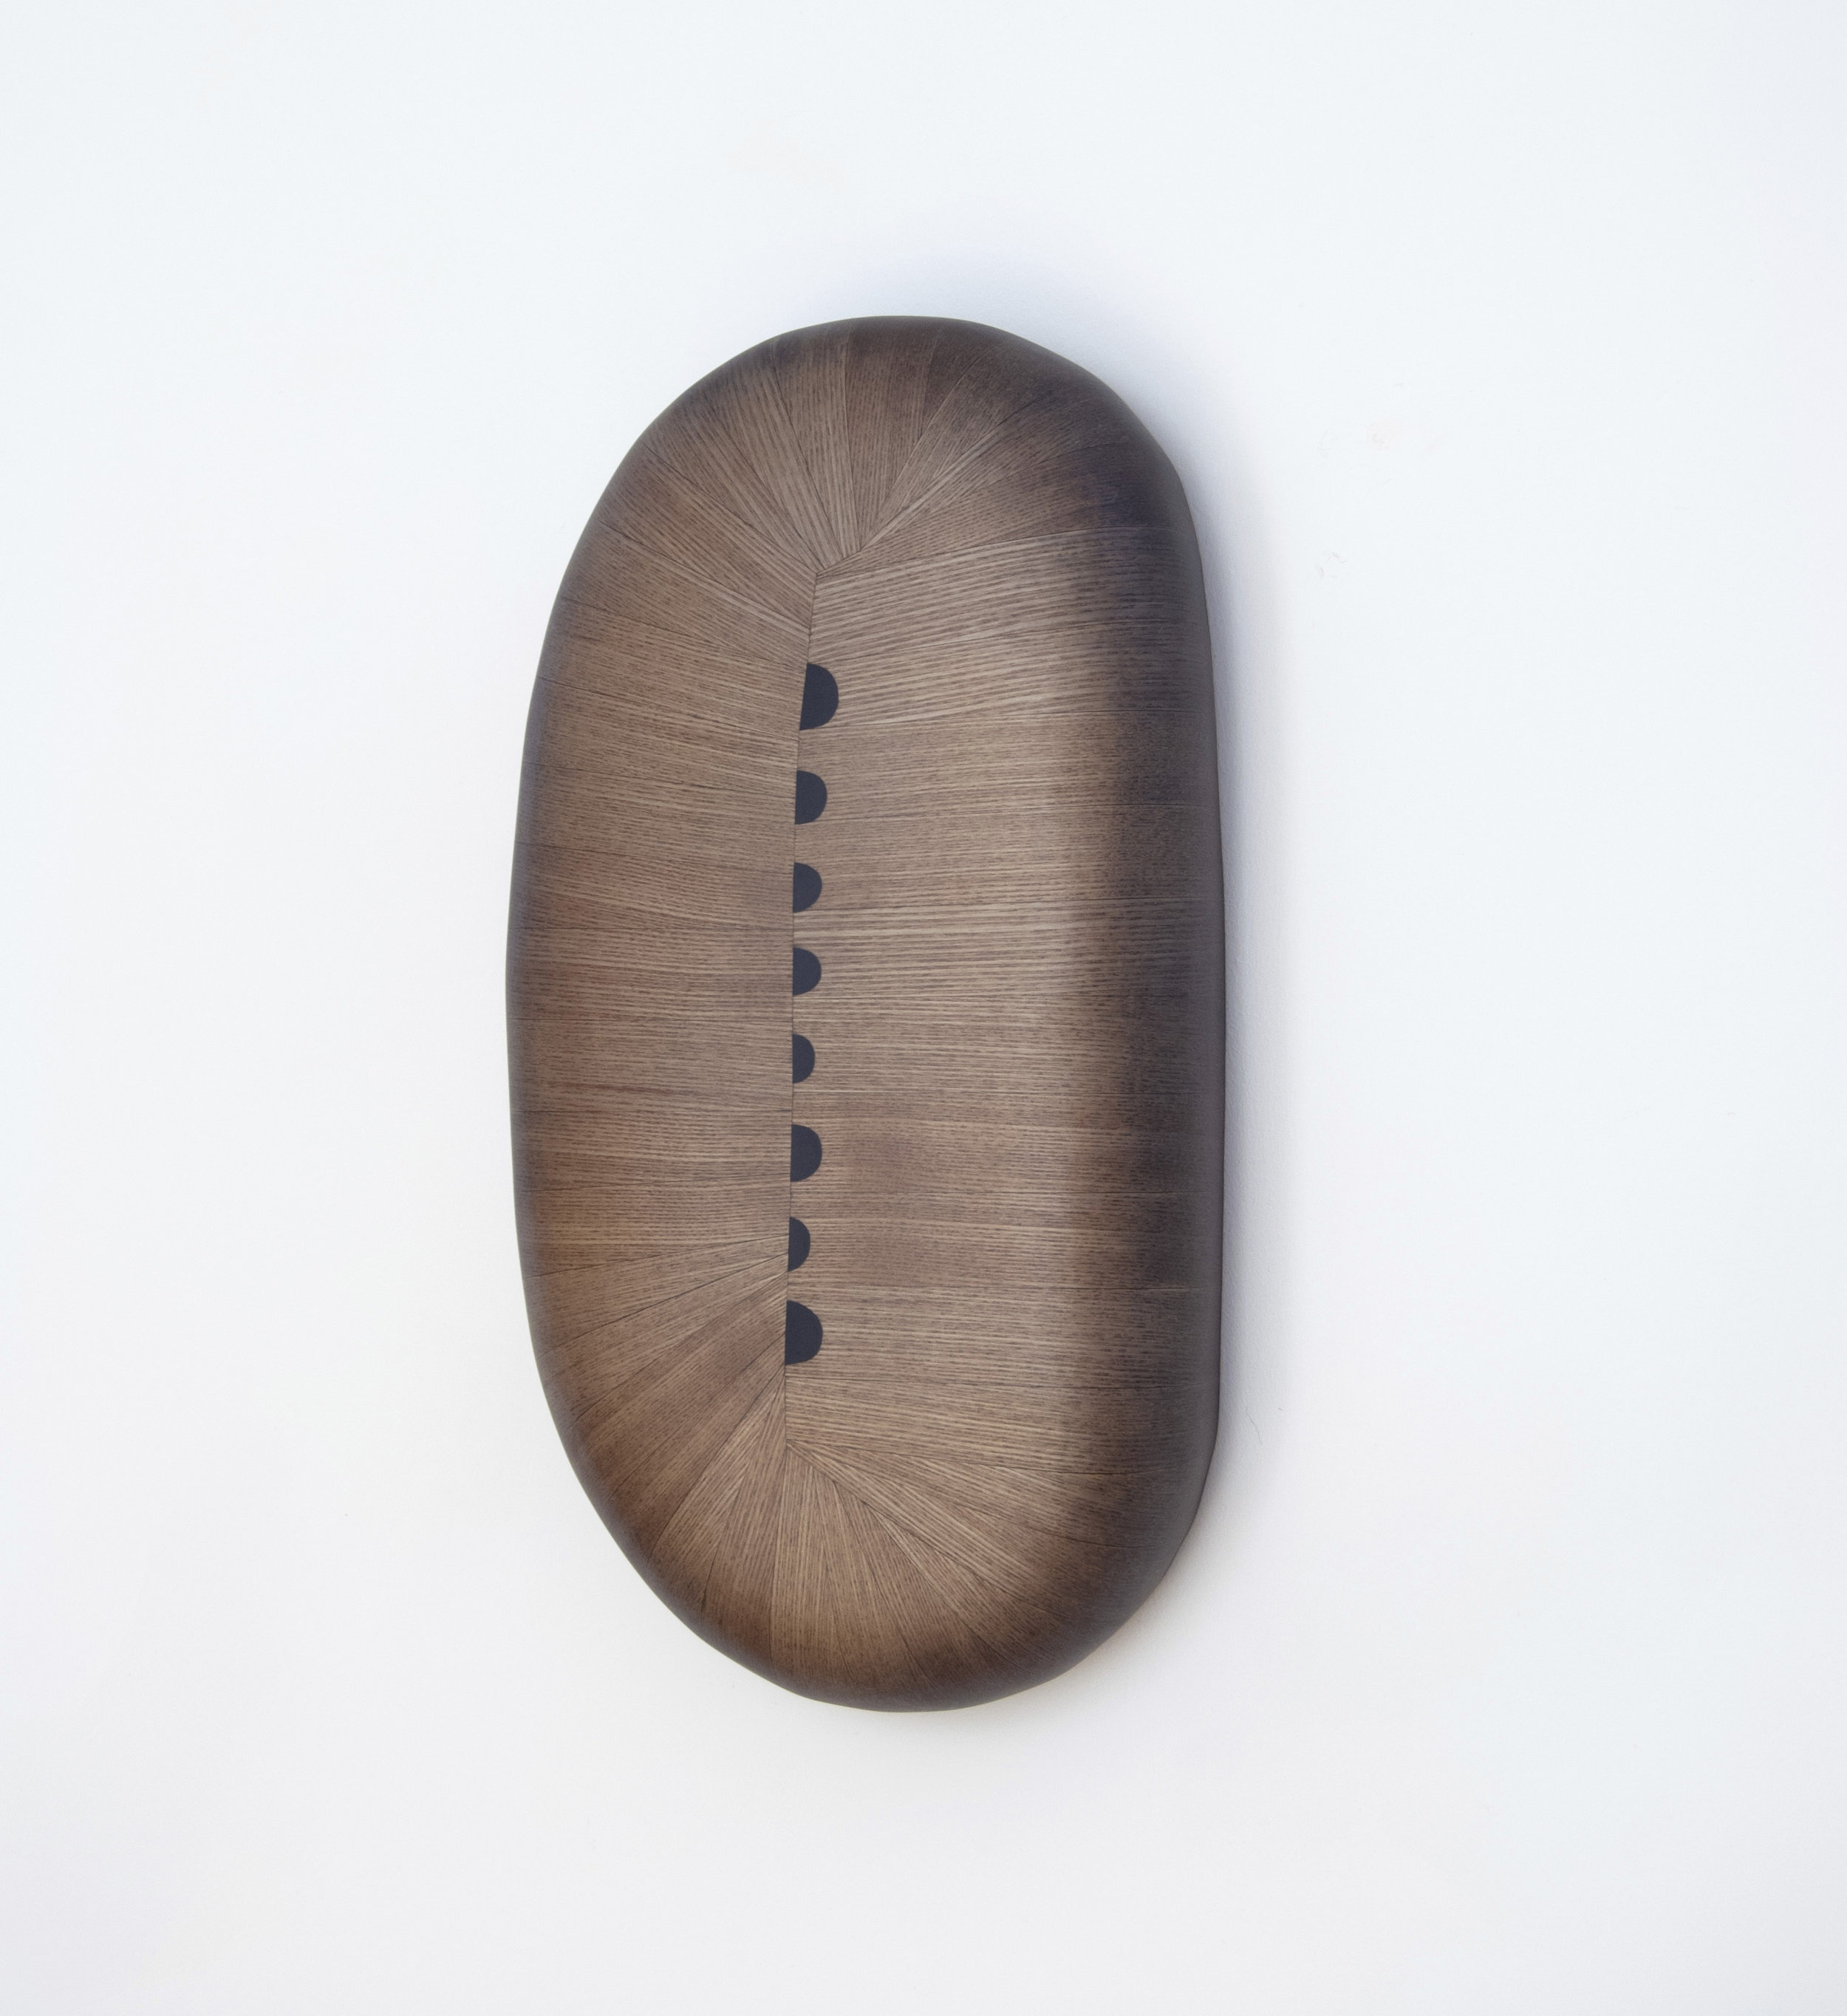 Penny, 2018  19 x 10 x 4 inches  wood, stain, paint